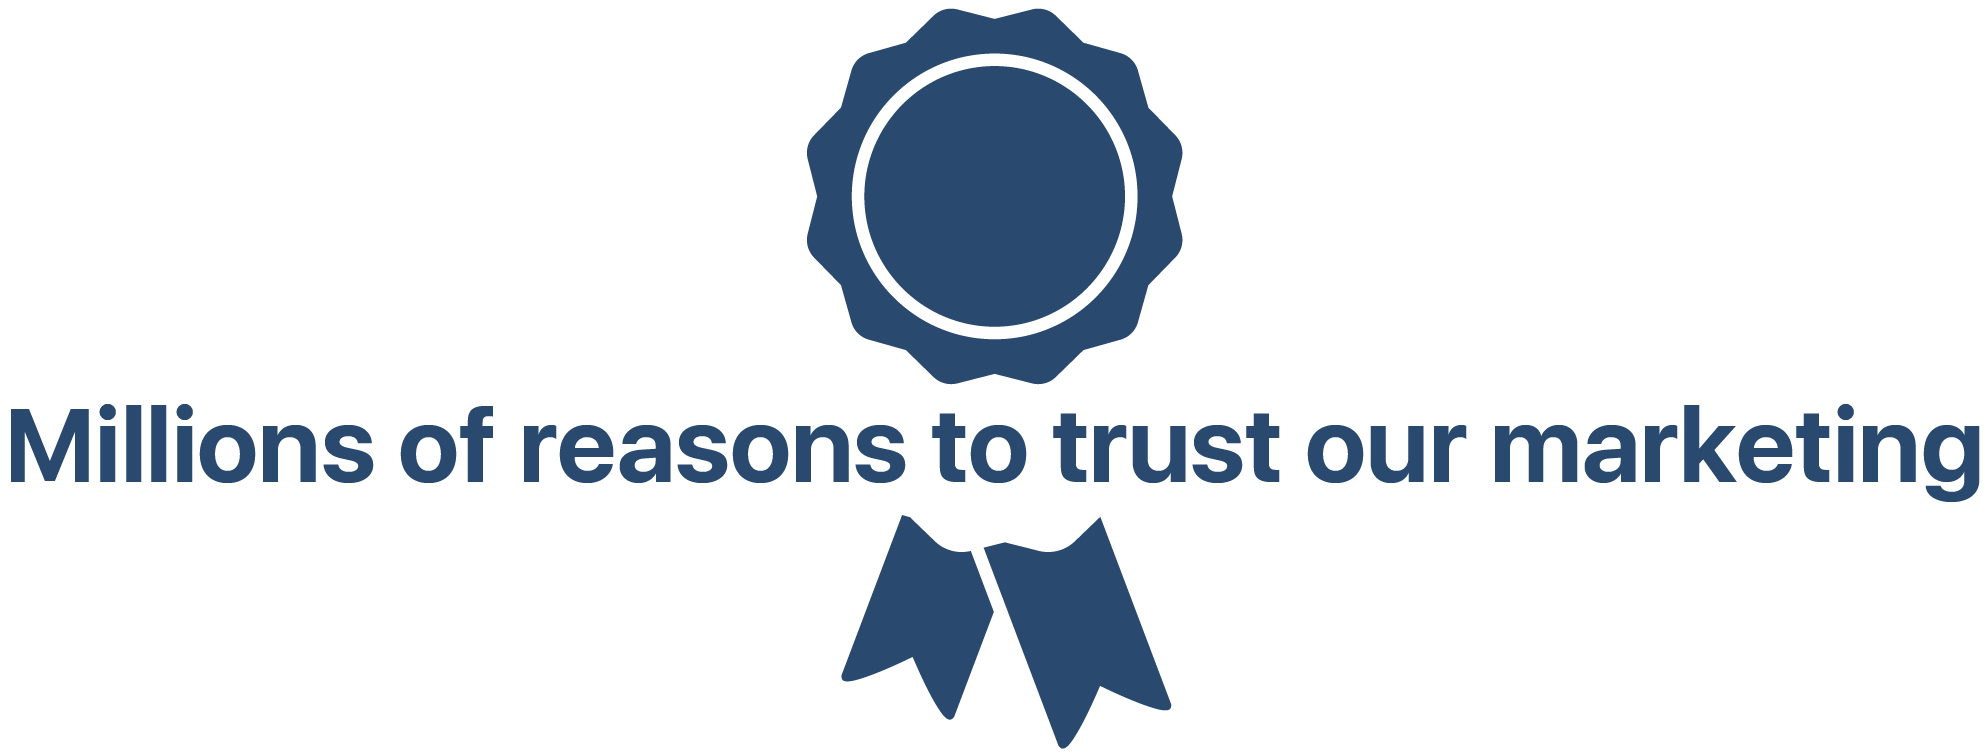 Millions of reasons to trust our marketing